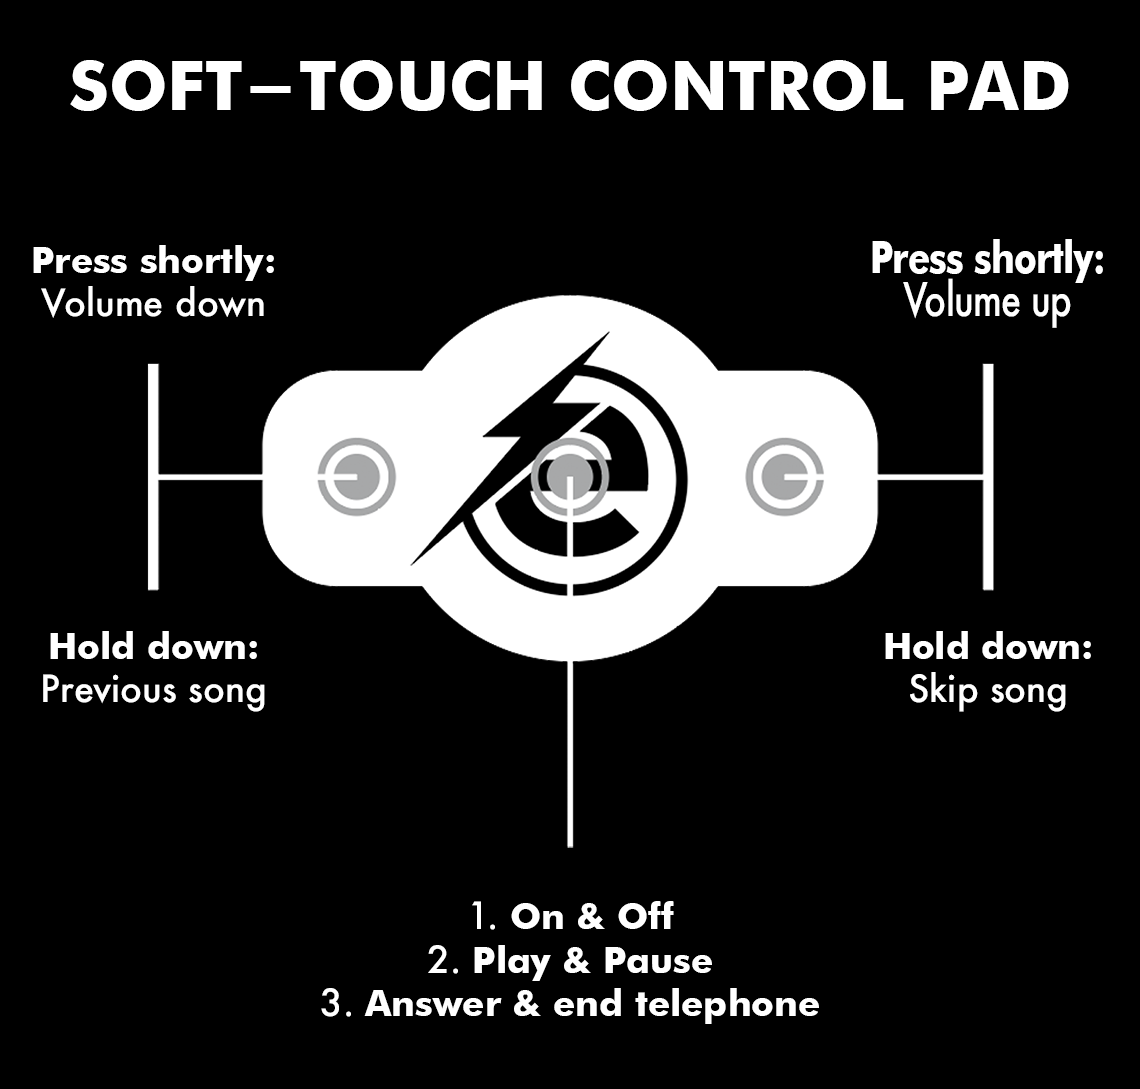 Soft-Touch Control Pad